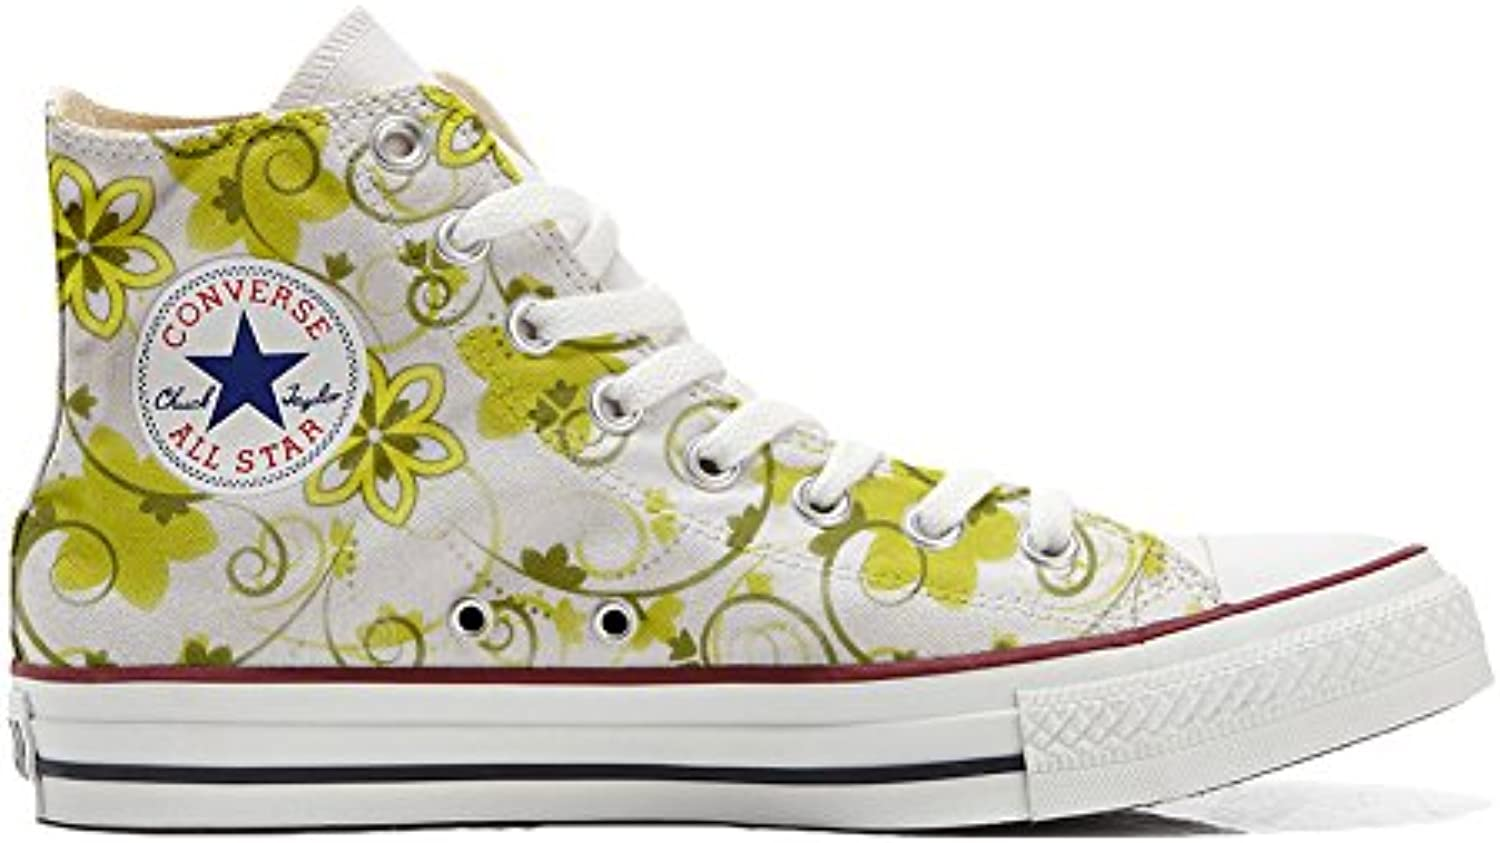 mys Converse All Star Customized Unisex   Personalisierte Schuhe (Handwerk Produkt) Summer Paisley